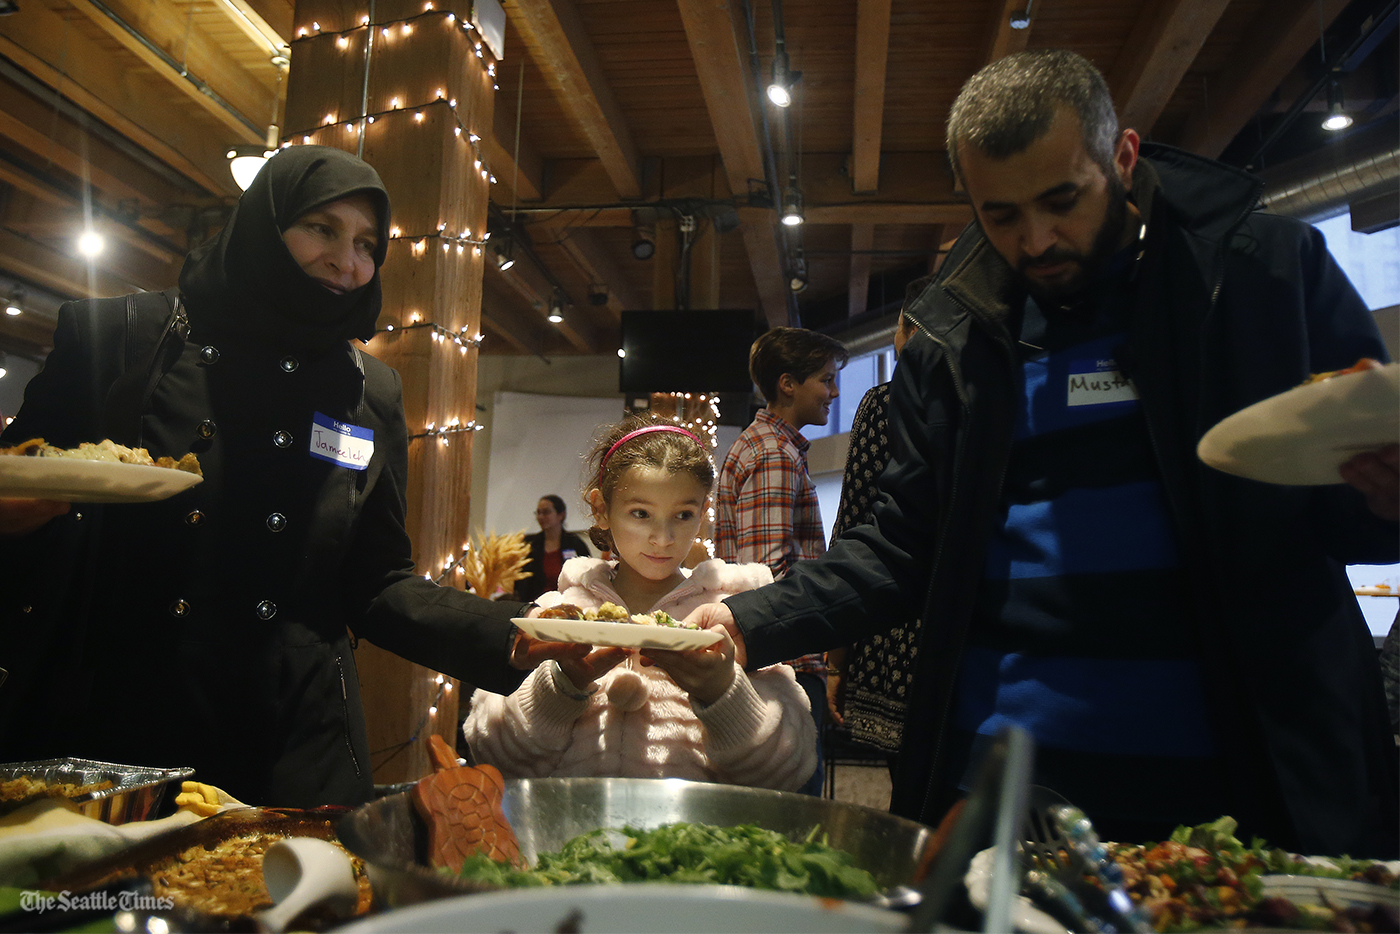 Mustafa Almustafa (right) helps his daughter Elaaf with her plate of food on Thursday, November 24, 2016, at the Impact Hub Seattle. Over 50 people from both sides of Puget Sound are donating food, supplies, and funds for the event, and the refugee families will be bringing some traditional dishes from their homeland to share with their new American friends.